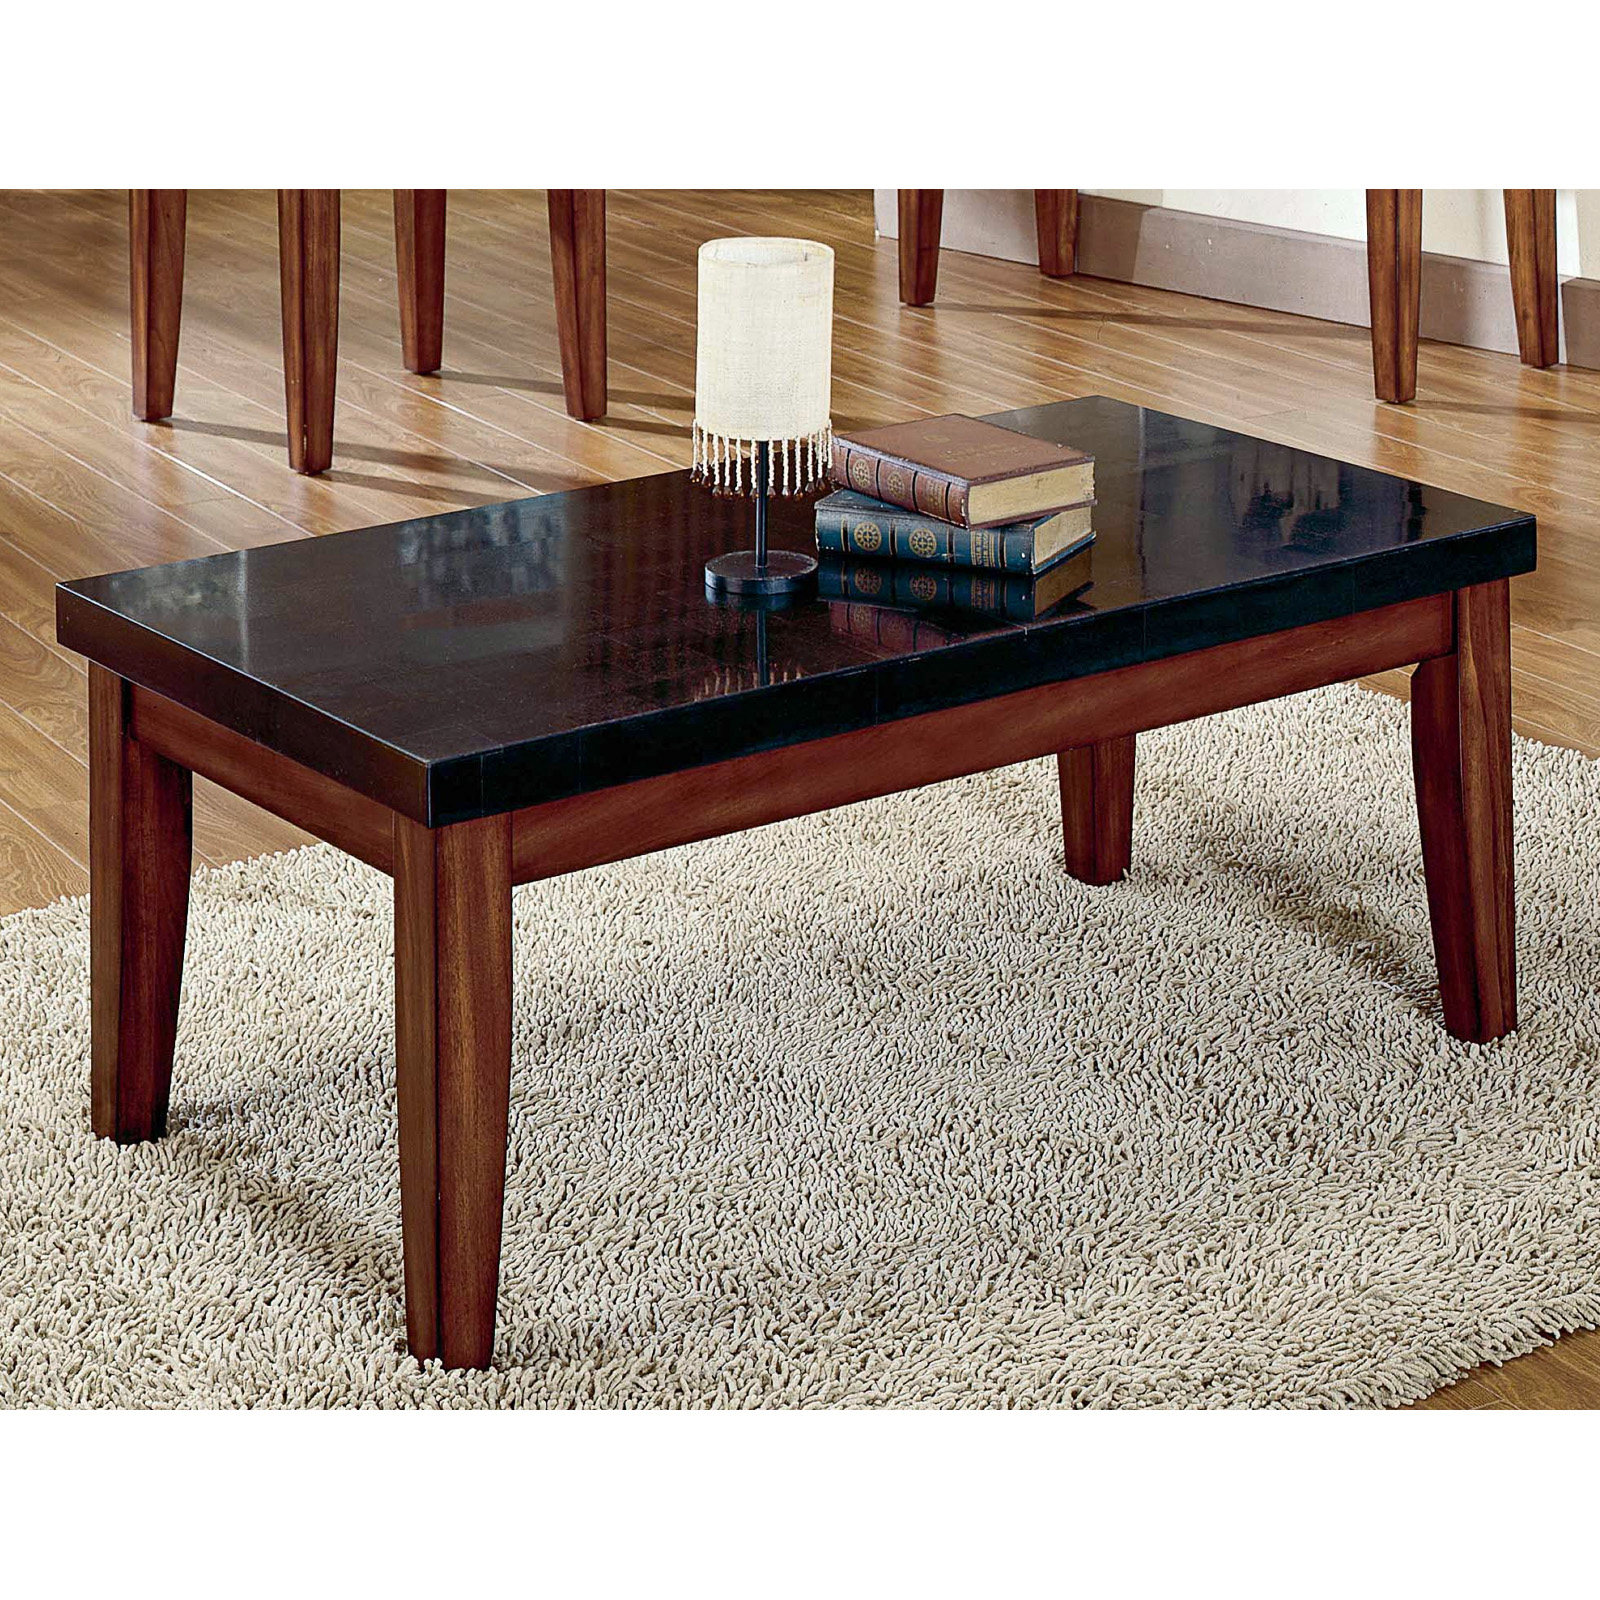 Steve silver montibello granite top coffee table coffee tables at hayneedle Coffee tables with marble tops